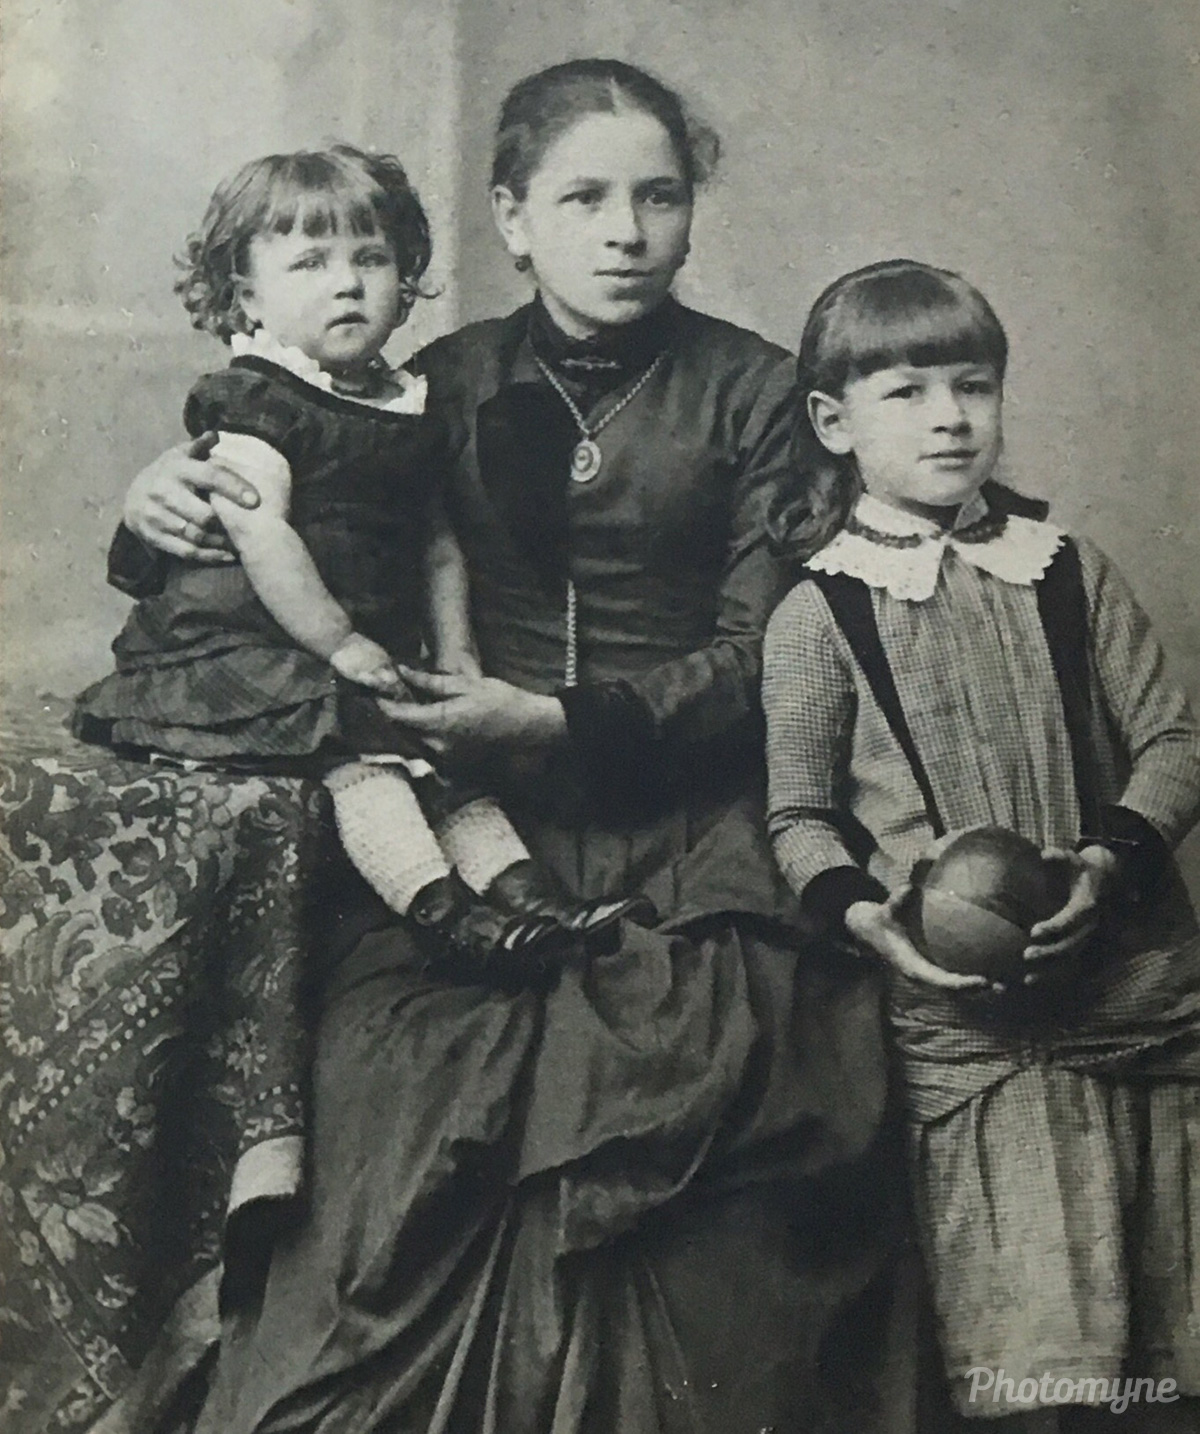 Familiefoto af min bedstemor, oldemor og storesøster Henni (Family photo of my grandmother, great-grandmother and older sister Henni), Altona, Bergen, Norway, 1890